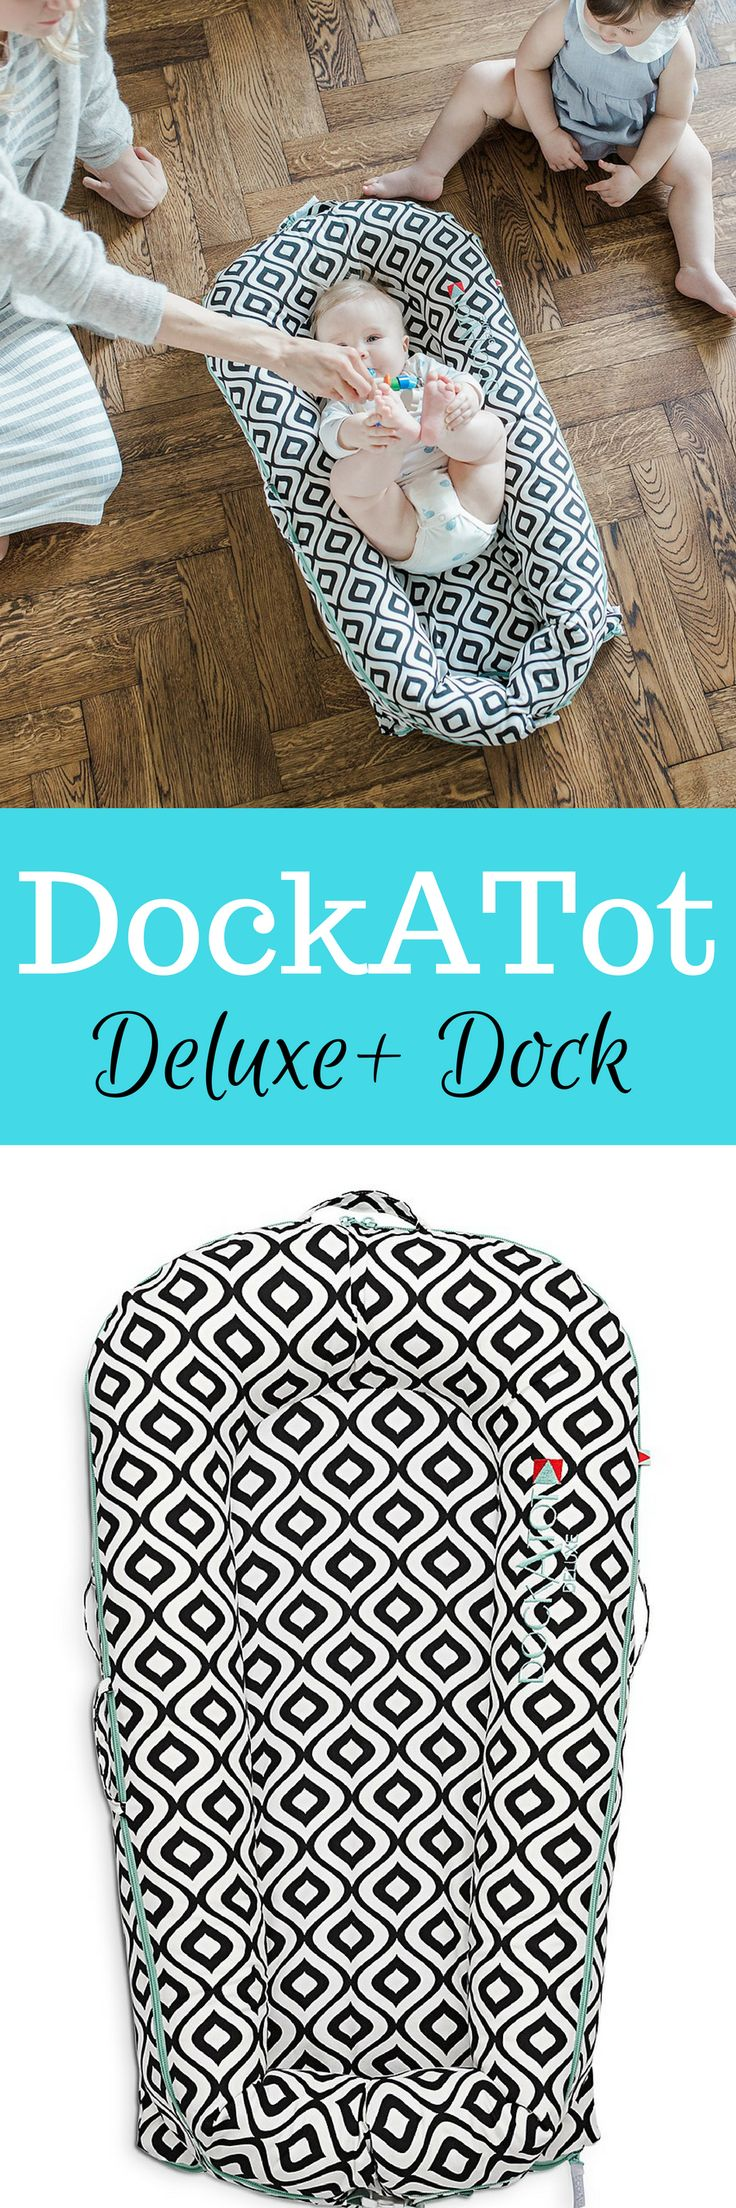 The DockATot Deluxe+ Dock is a snug spot for napping, tummy time, diaper changes and more. Its portable, unique design means peaceful, sweet dreams for the little one and quiet time for you, wherever you are. #affiliate #baby #cosleep